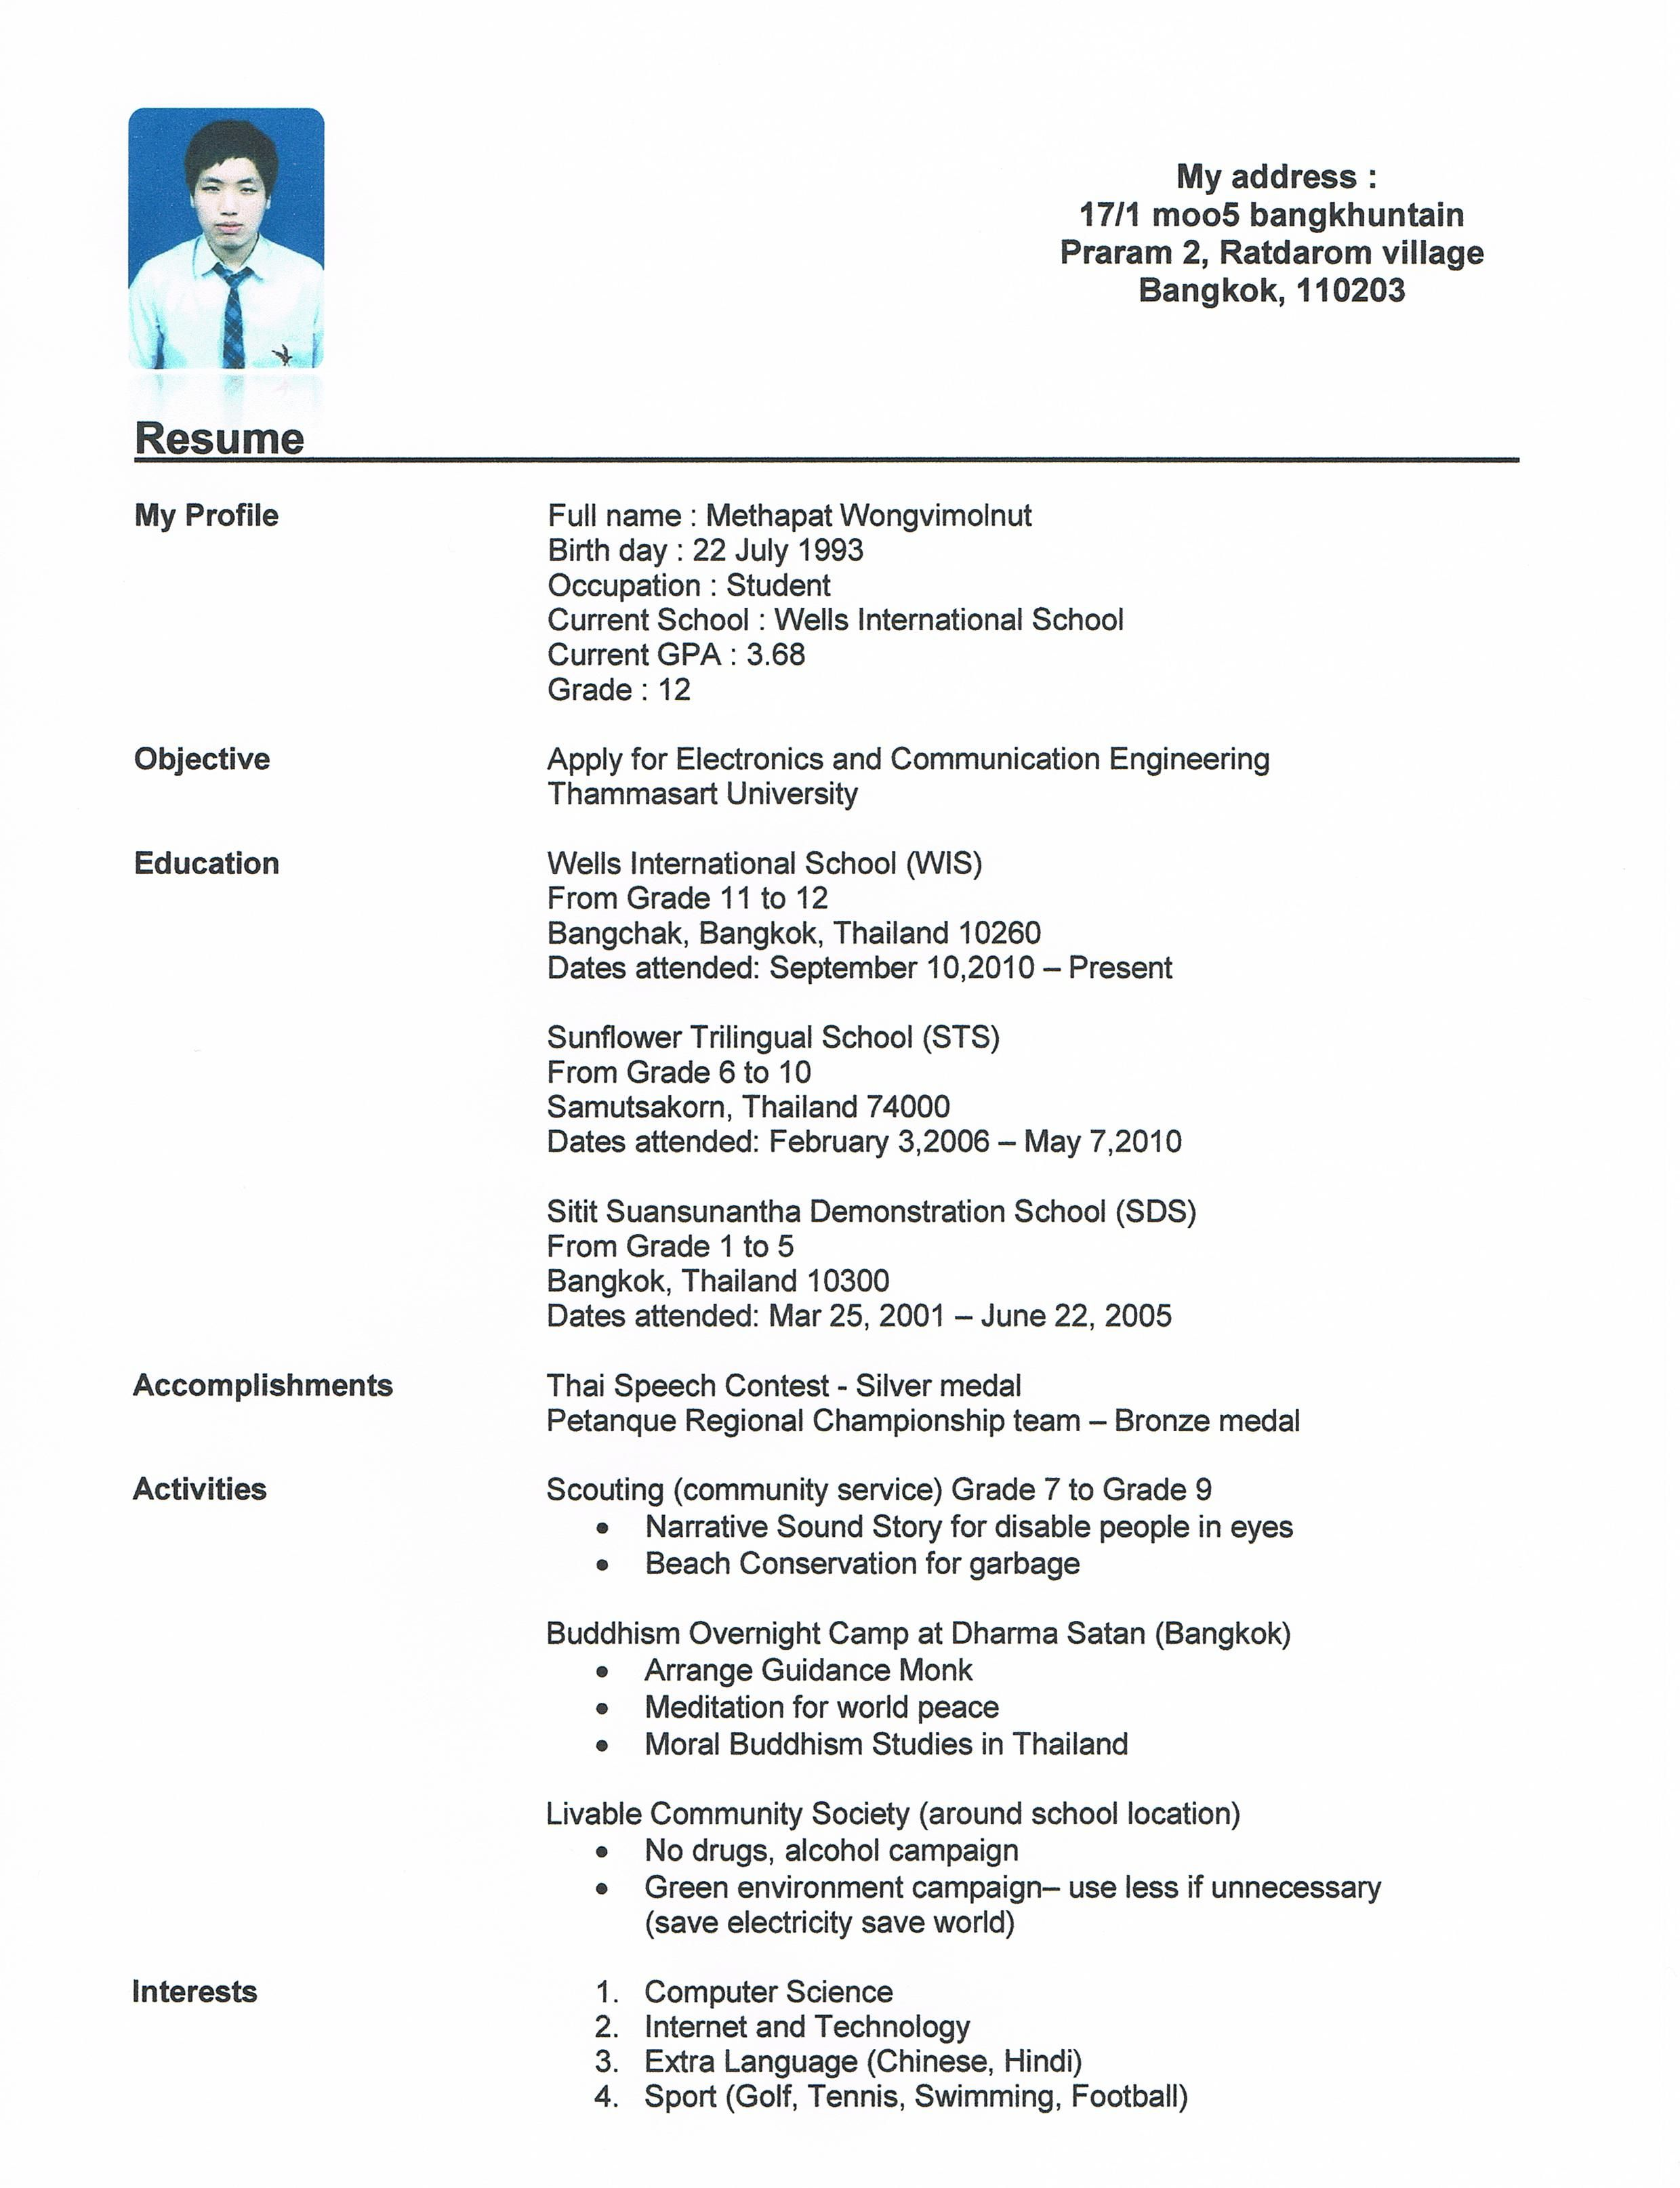 Resume Resume For High School high school resume for jobs builder templates http httpwww